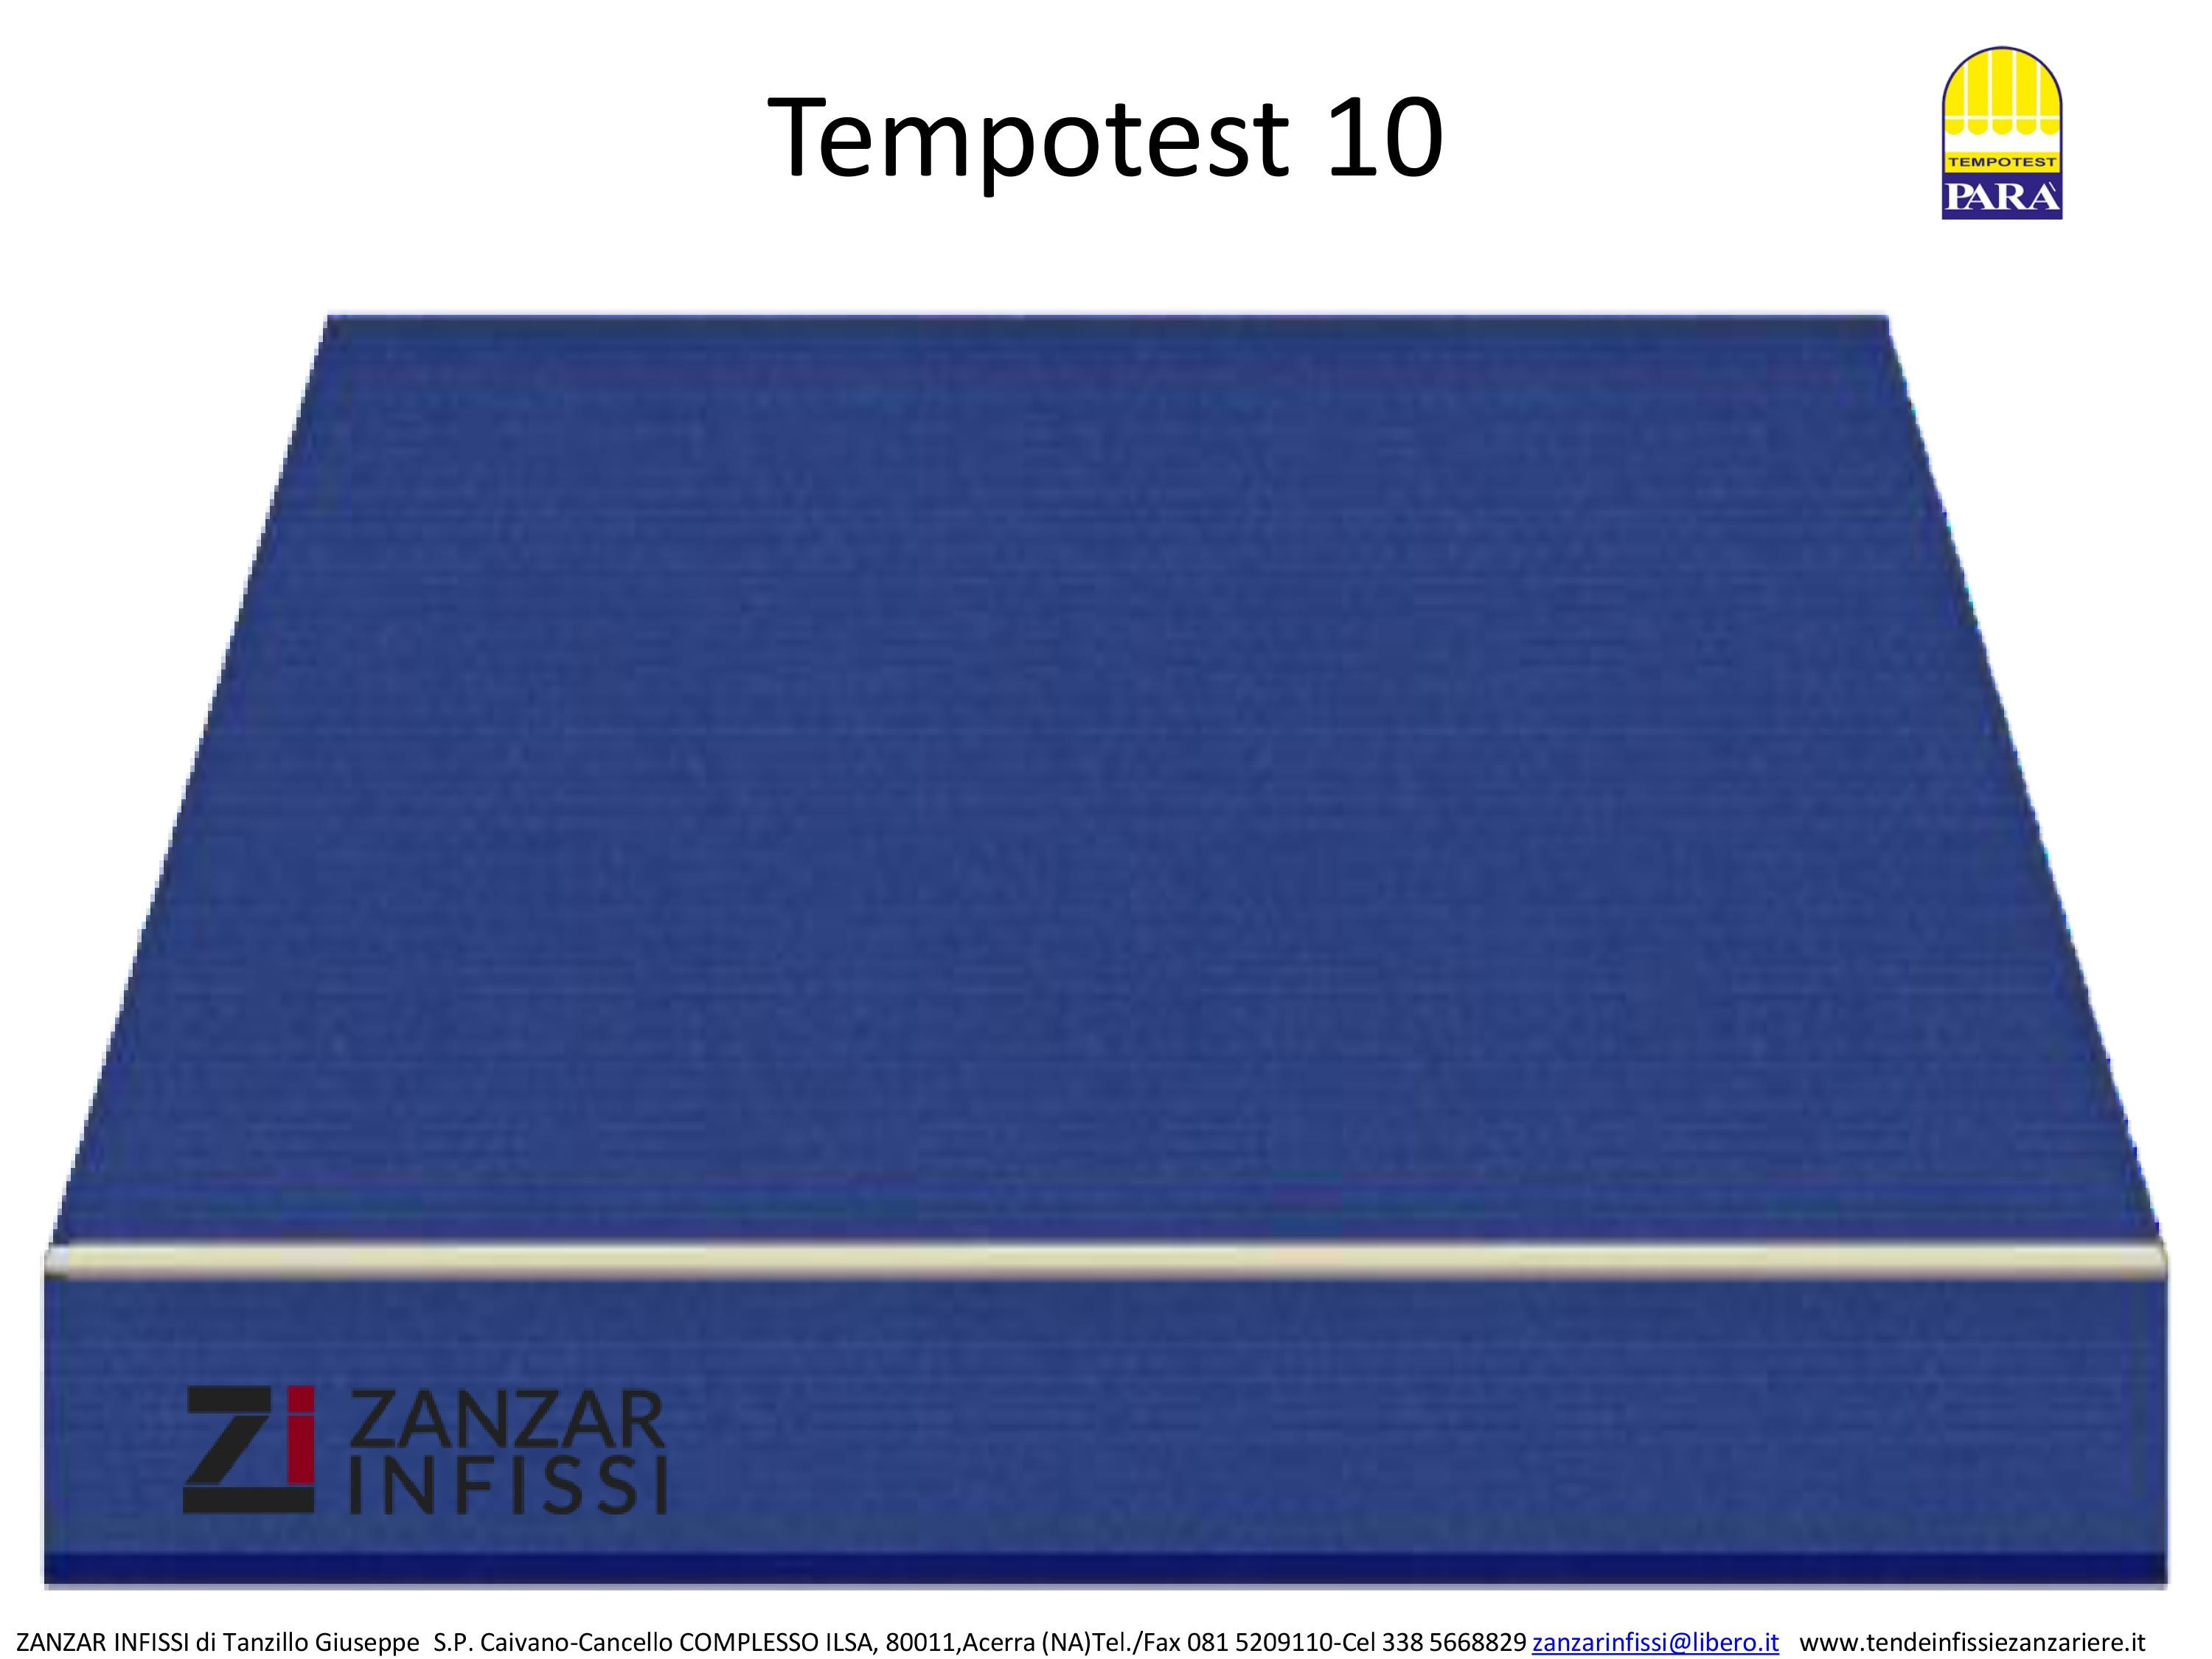 Tempotest 10